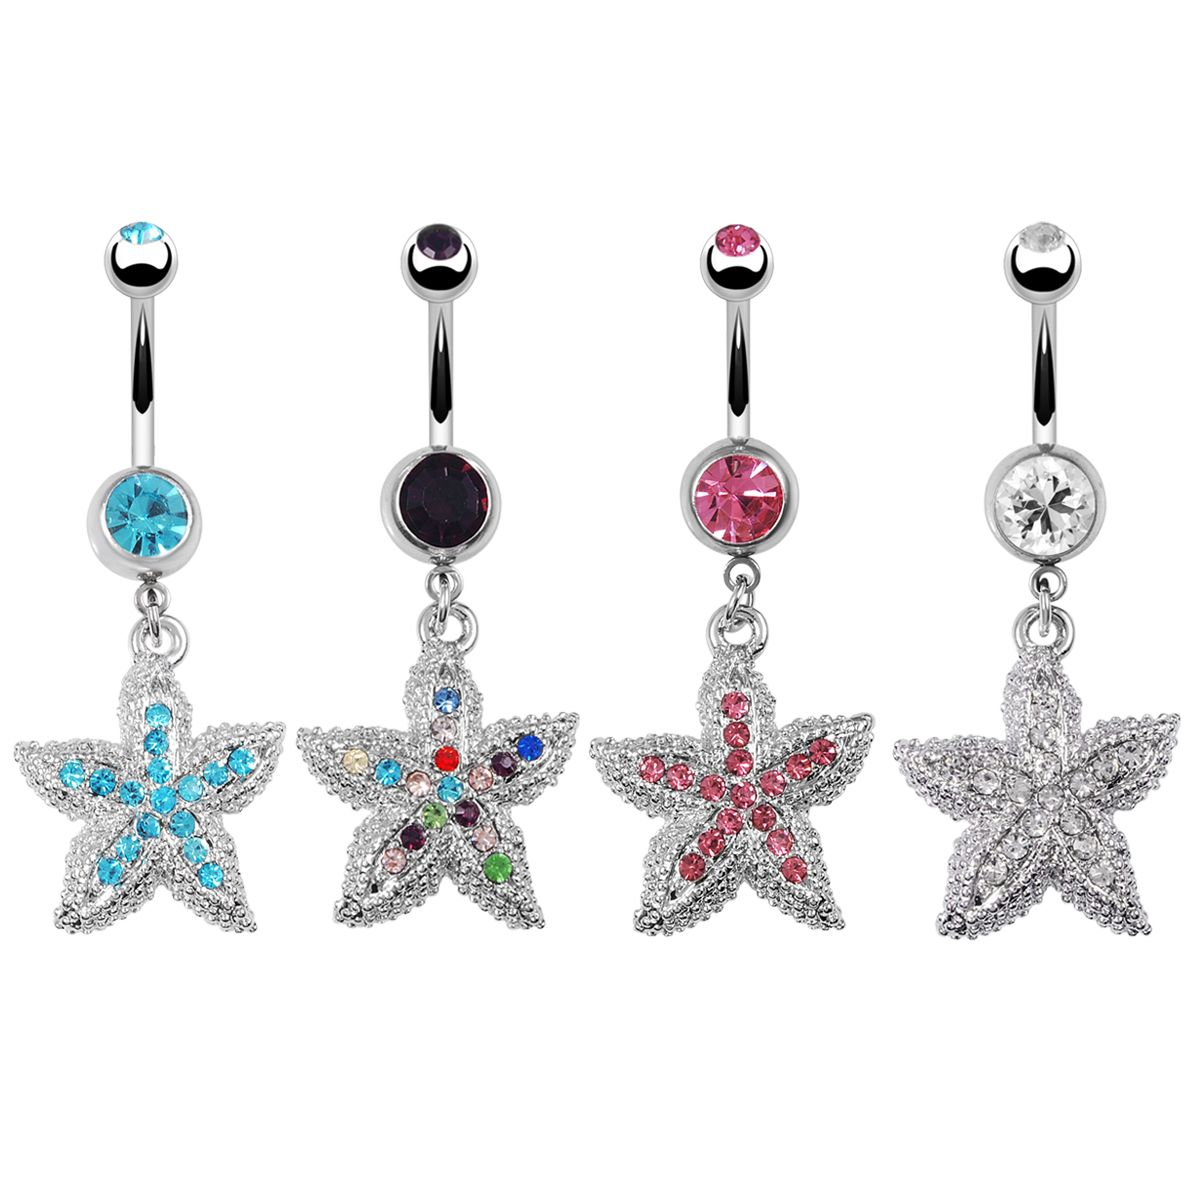 Navel piercing ideas  Starfish belly ring  perchings  Pinterest  Starfish Ring and